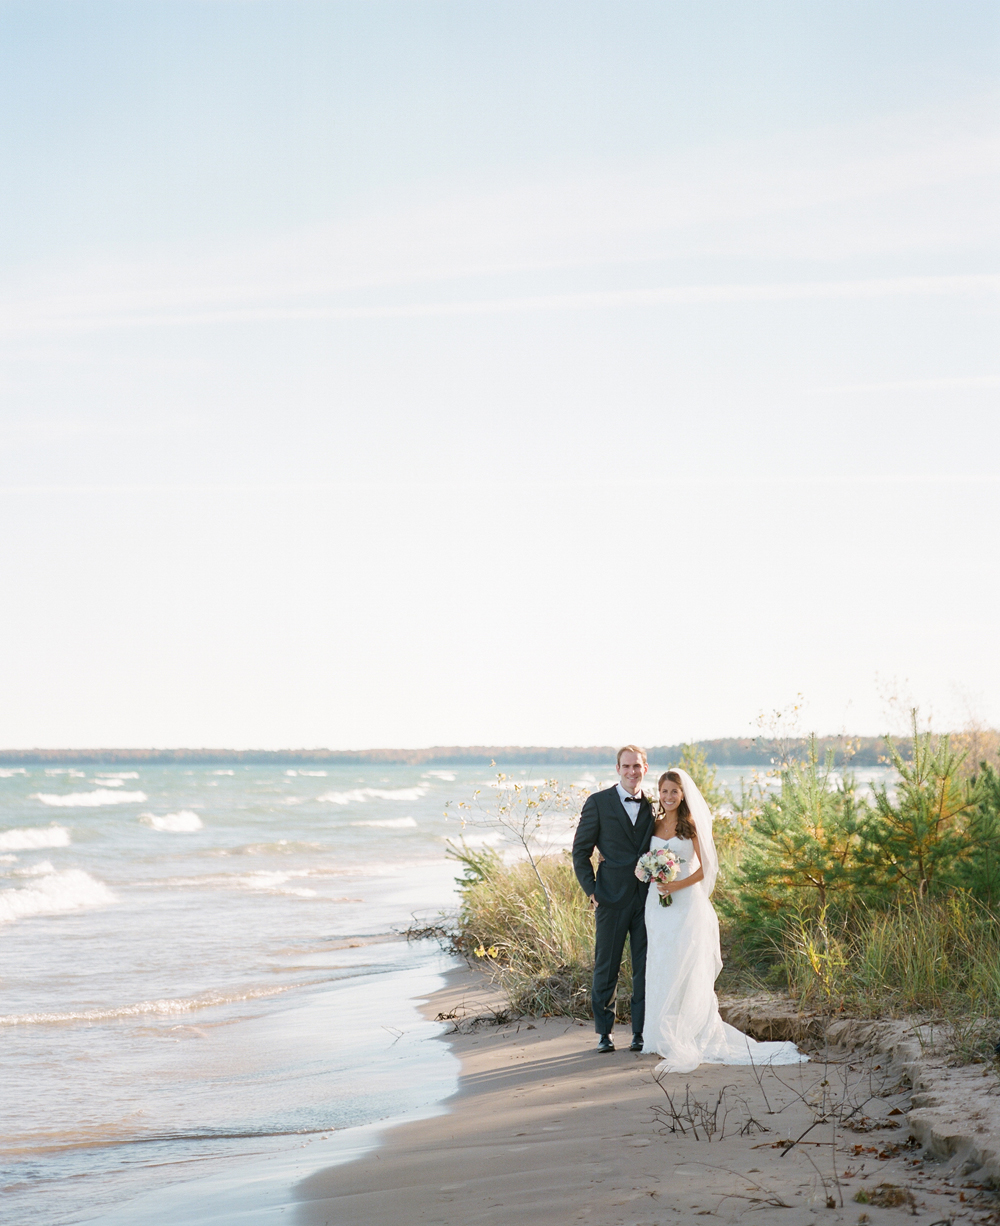 wedding-photography-door-county-wi-001.jpg